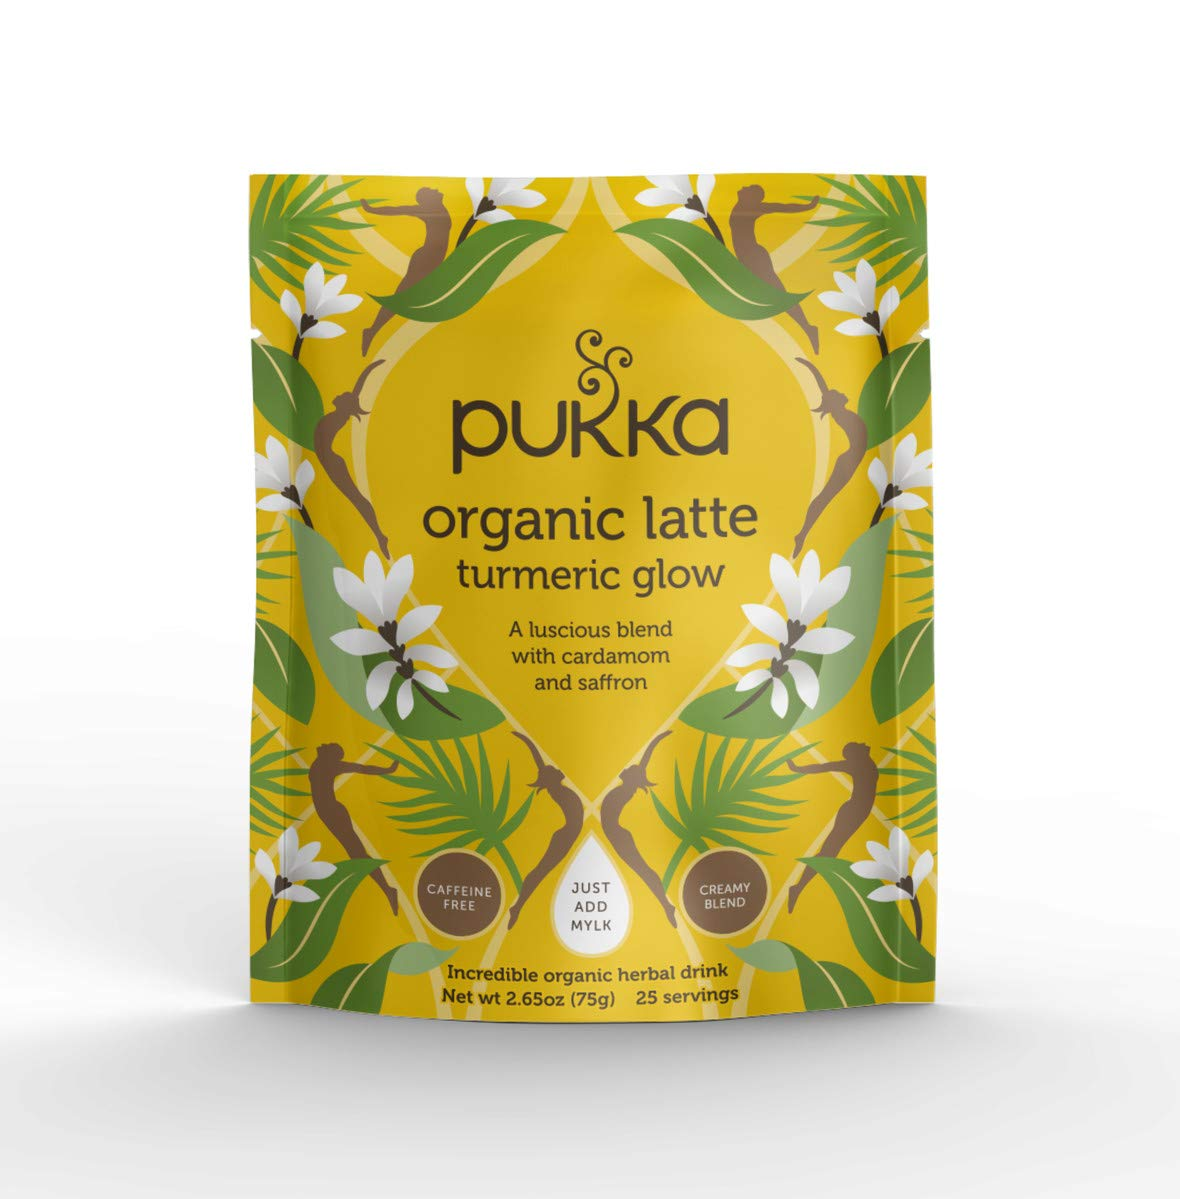 Pukka Turmeric Glow, Organic Herbal Latte with Cardamom & Saffron, 75g by Pukka Herbs